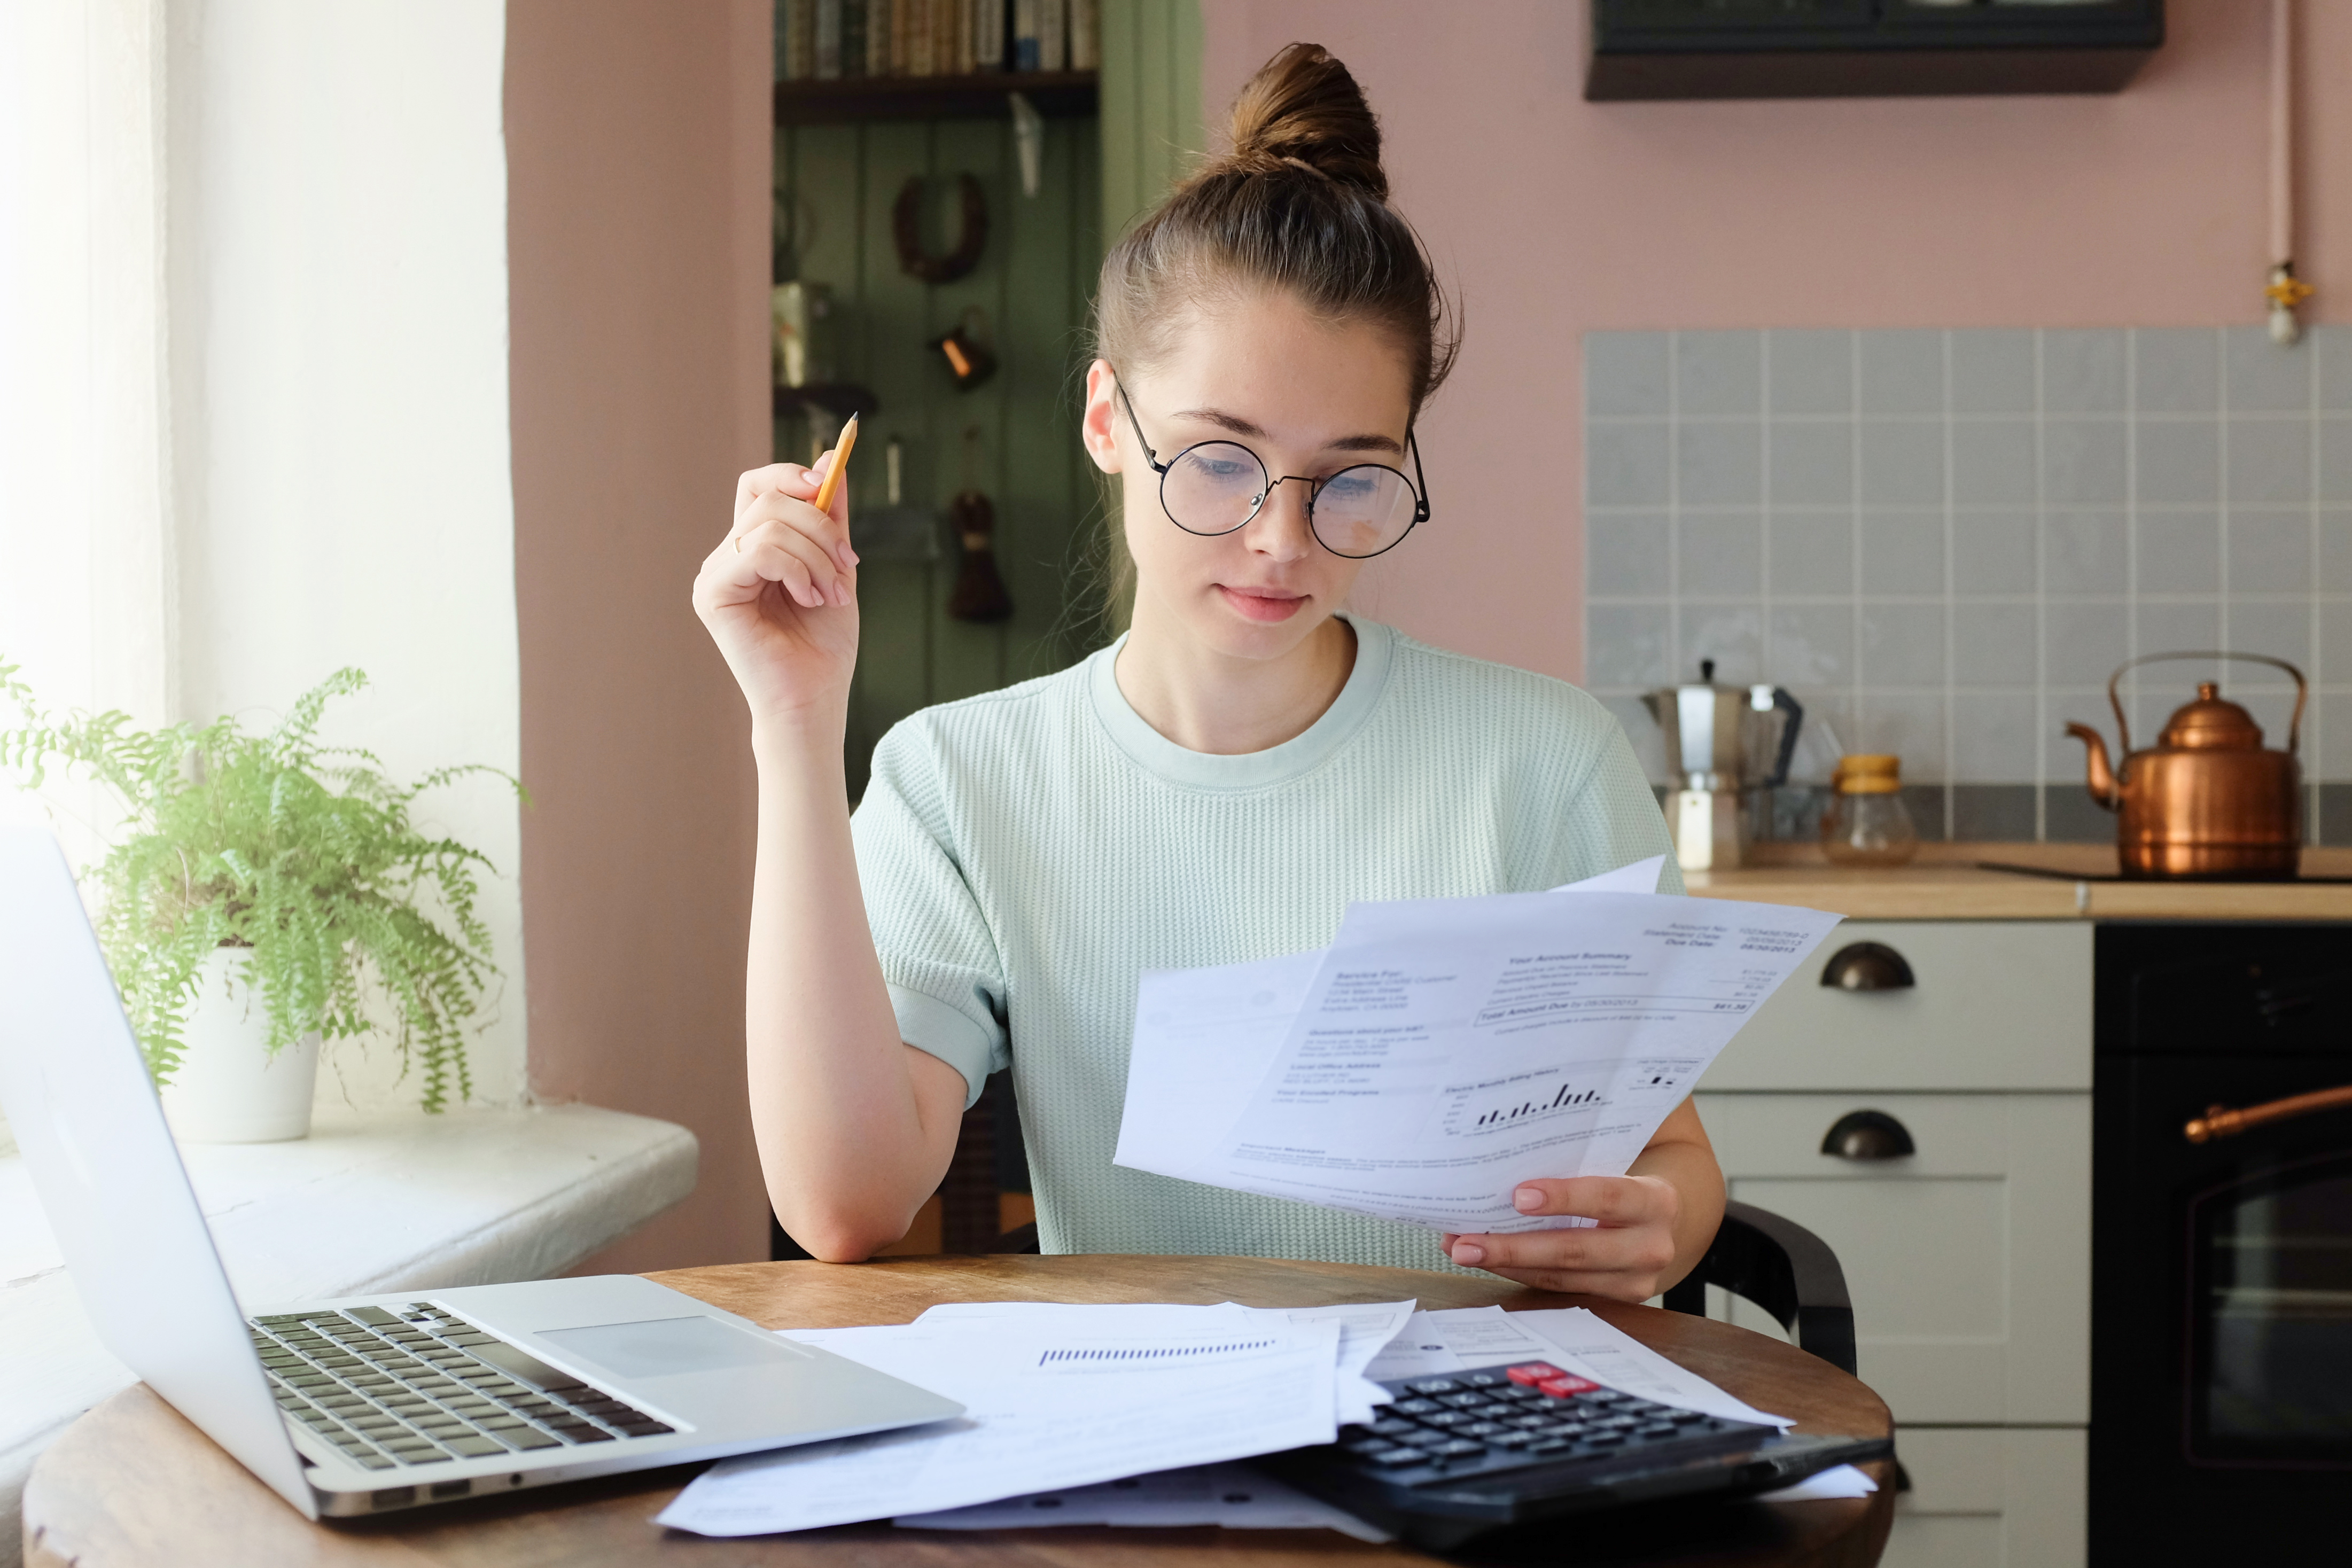 How to Calculate Differential Pay | Career Trend